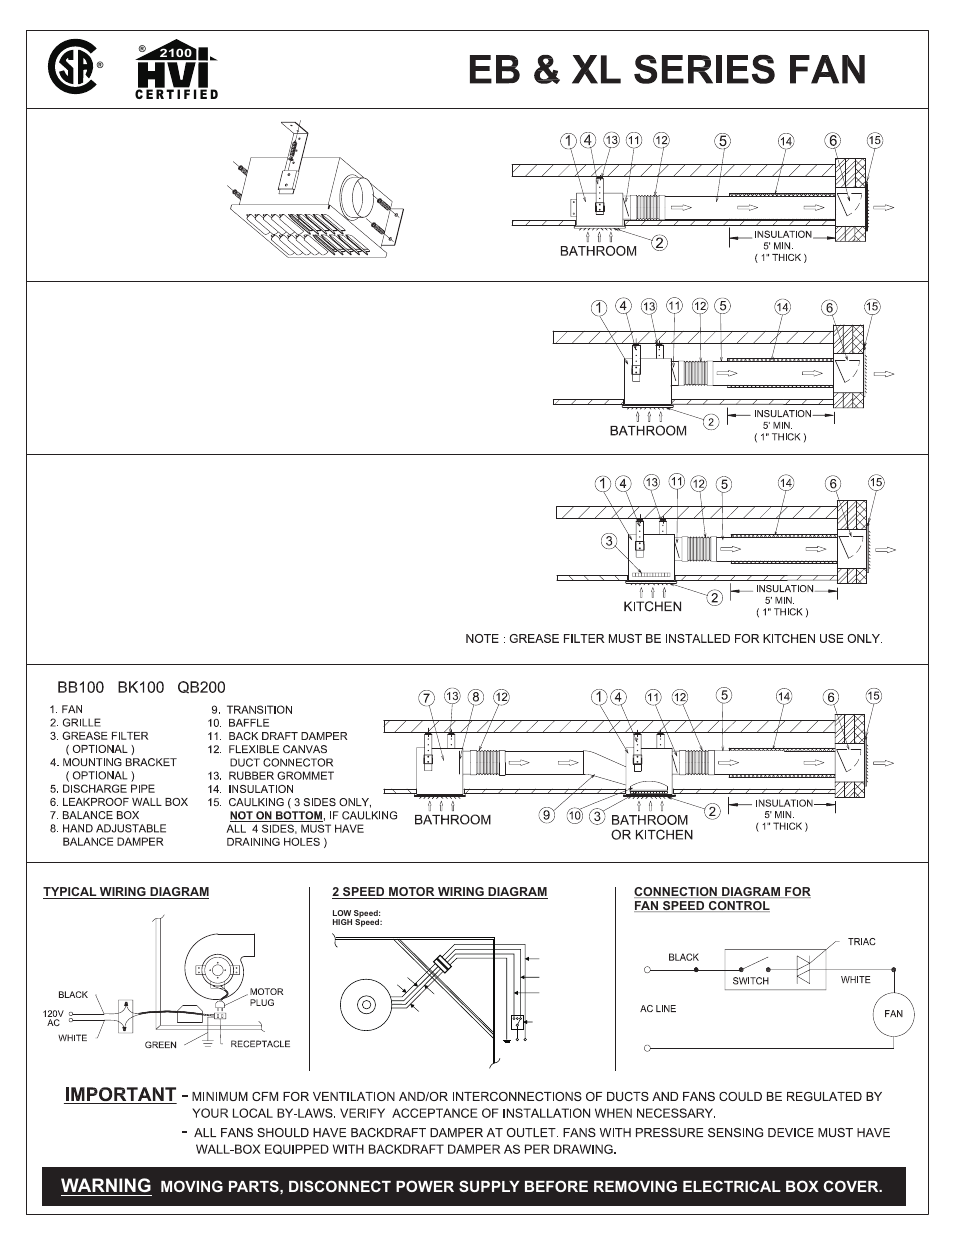 Reversomatic Cf 170 2 Two Speed User Manual Pages Also For Wiring Diagrams Rs 90